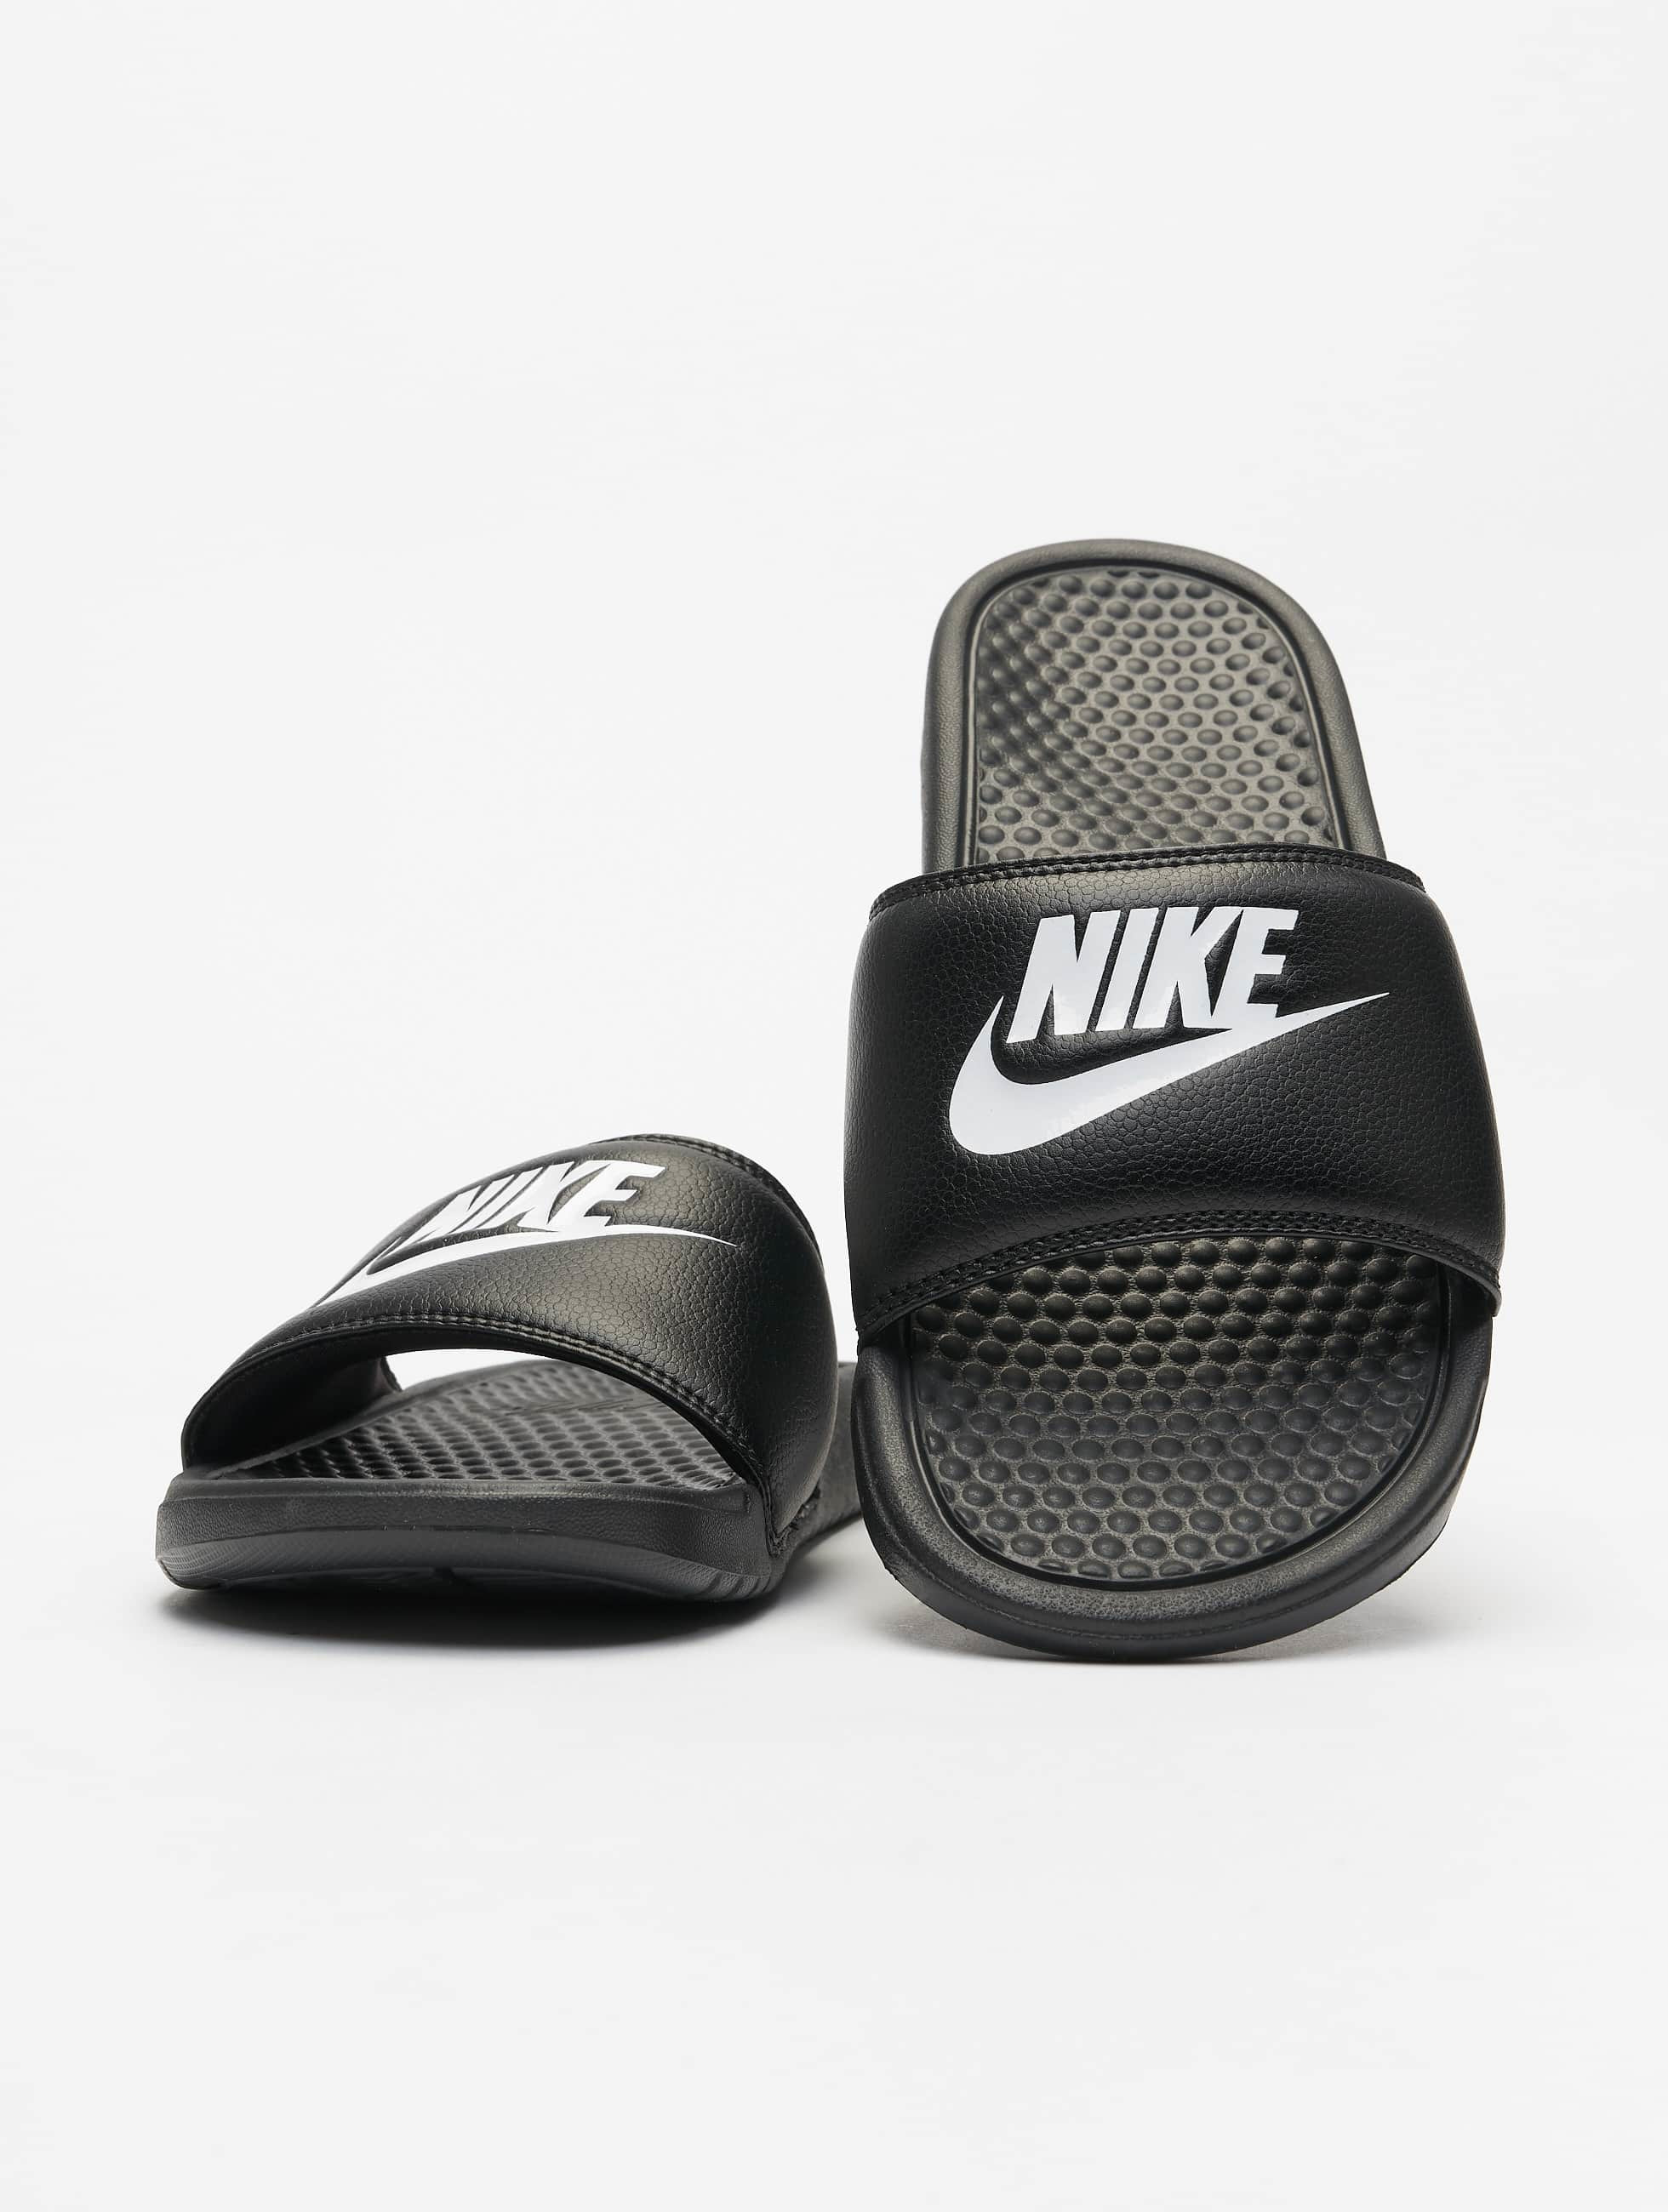 Adidas Slippers Heren Nike | Benassi Jdi Noir Homme Claquettes & Sandales 256902